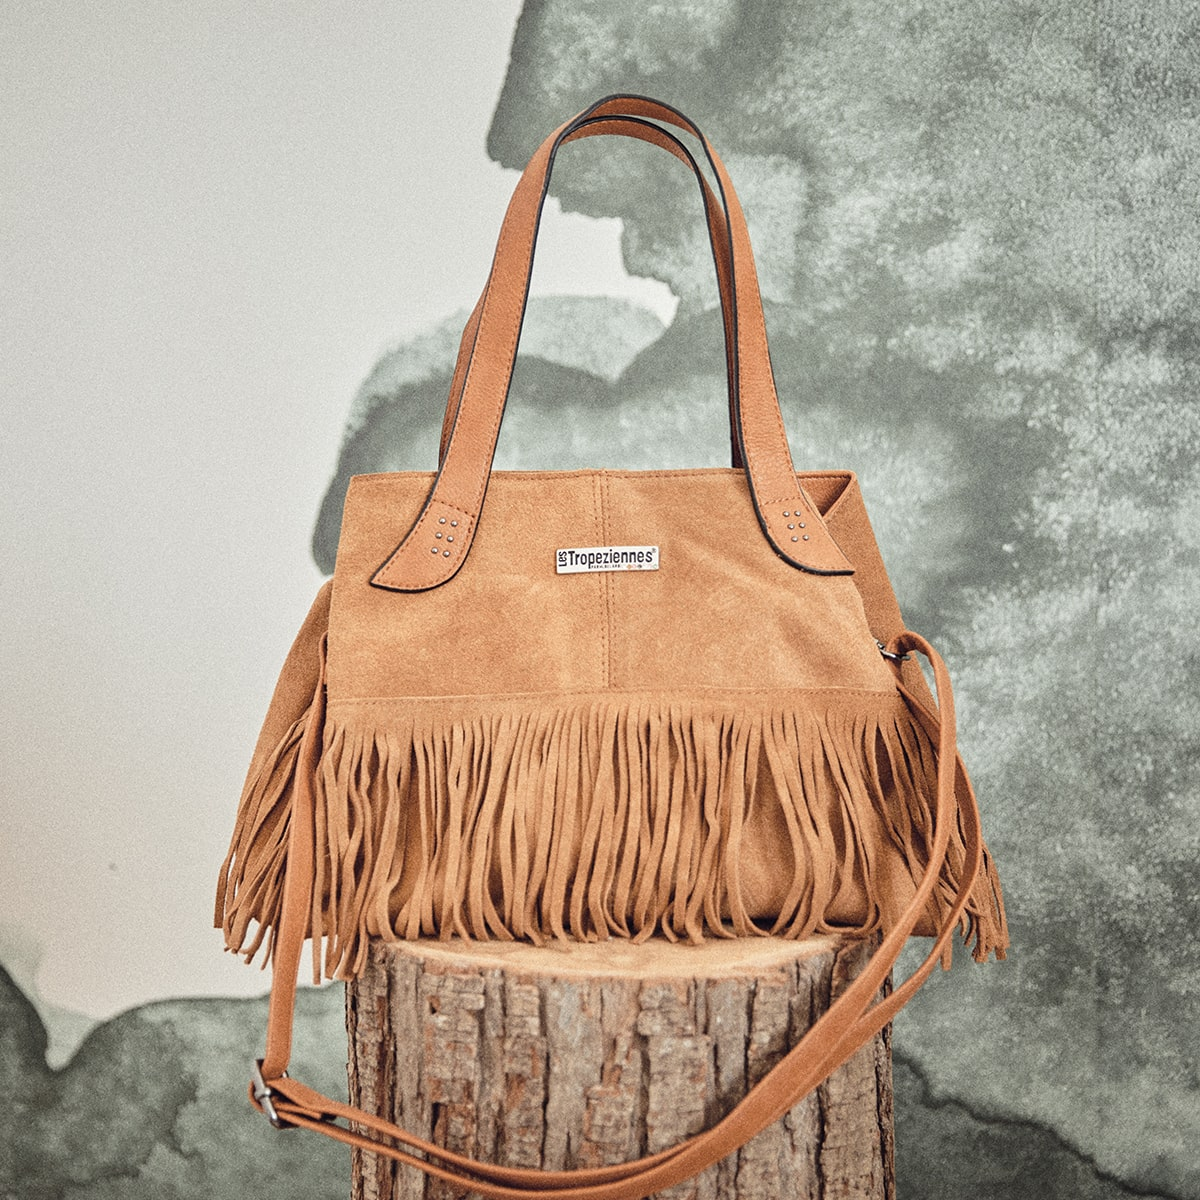 Leather handbag Voreppe camel | Les Tropeziennes